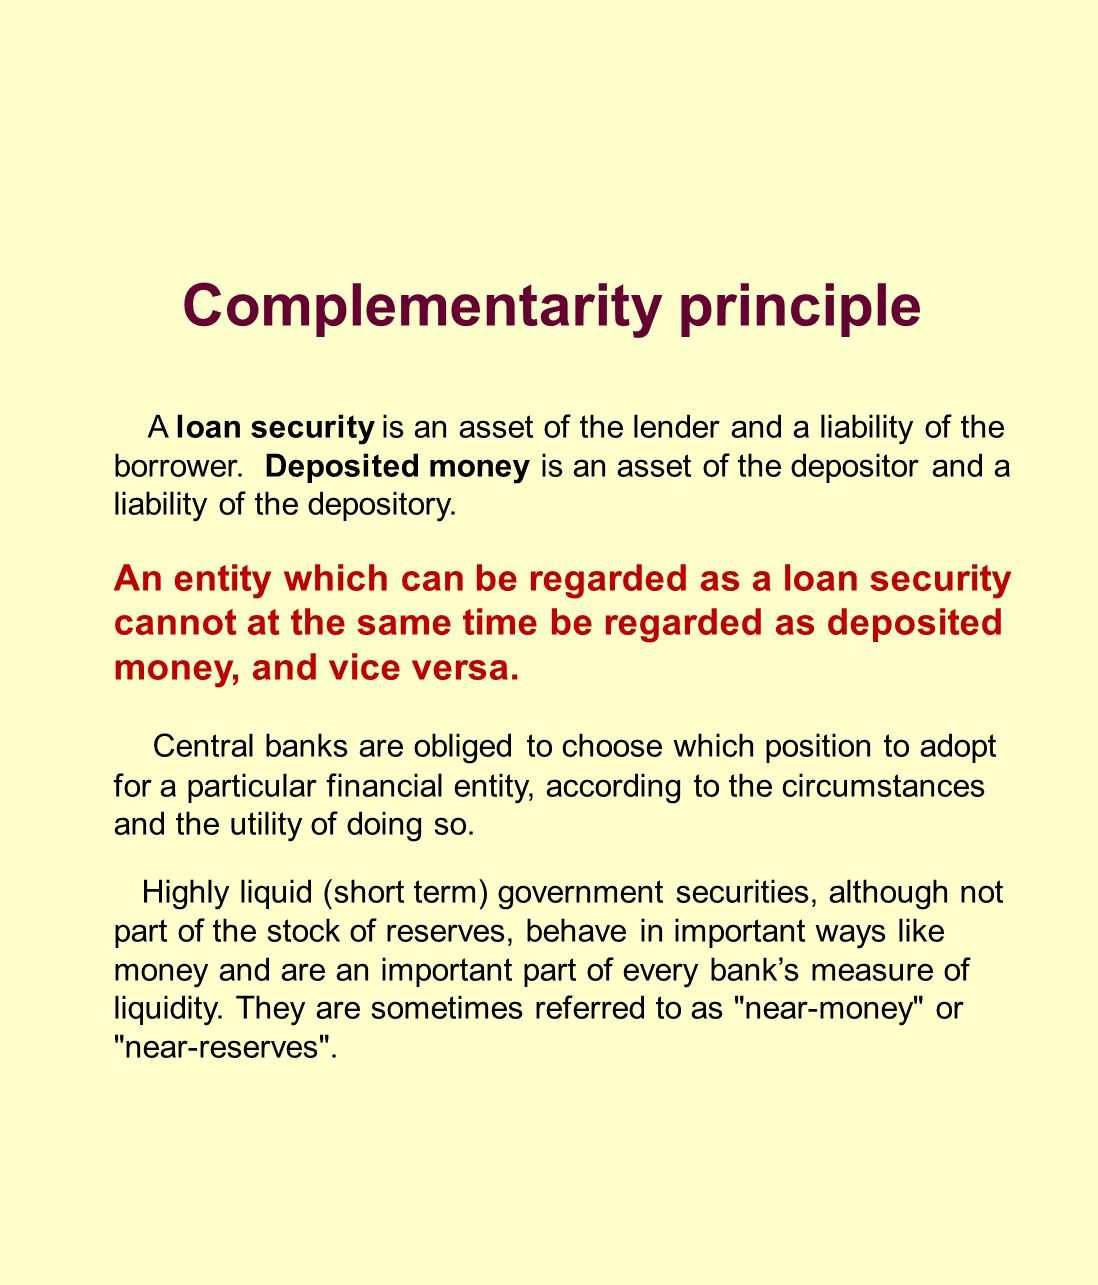 Complementarity principle A loan security is an asset of the lender and a liability of the borrower.